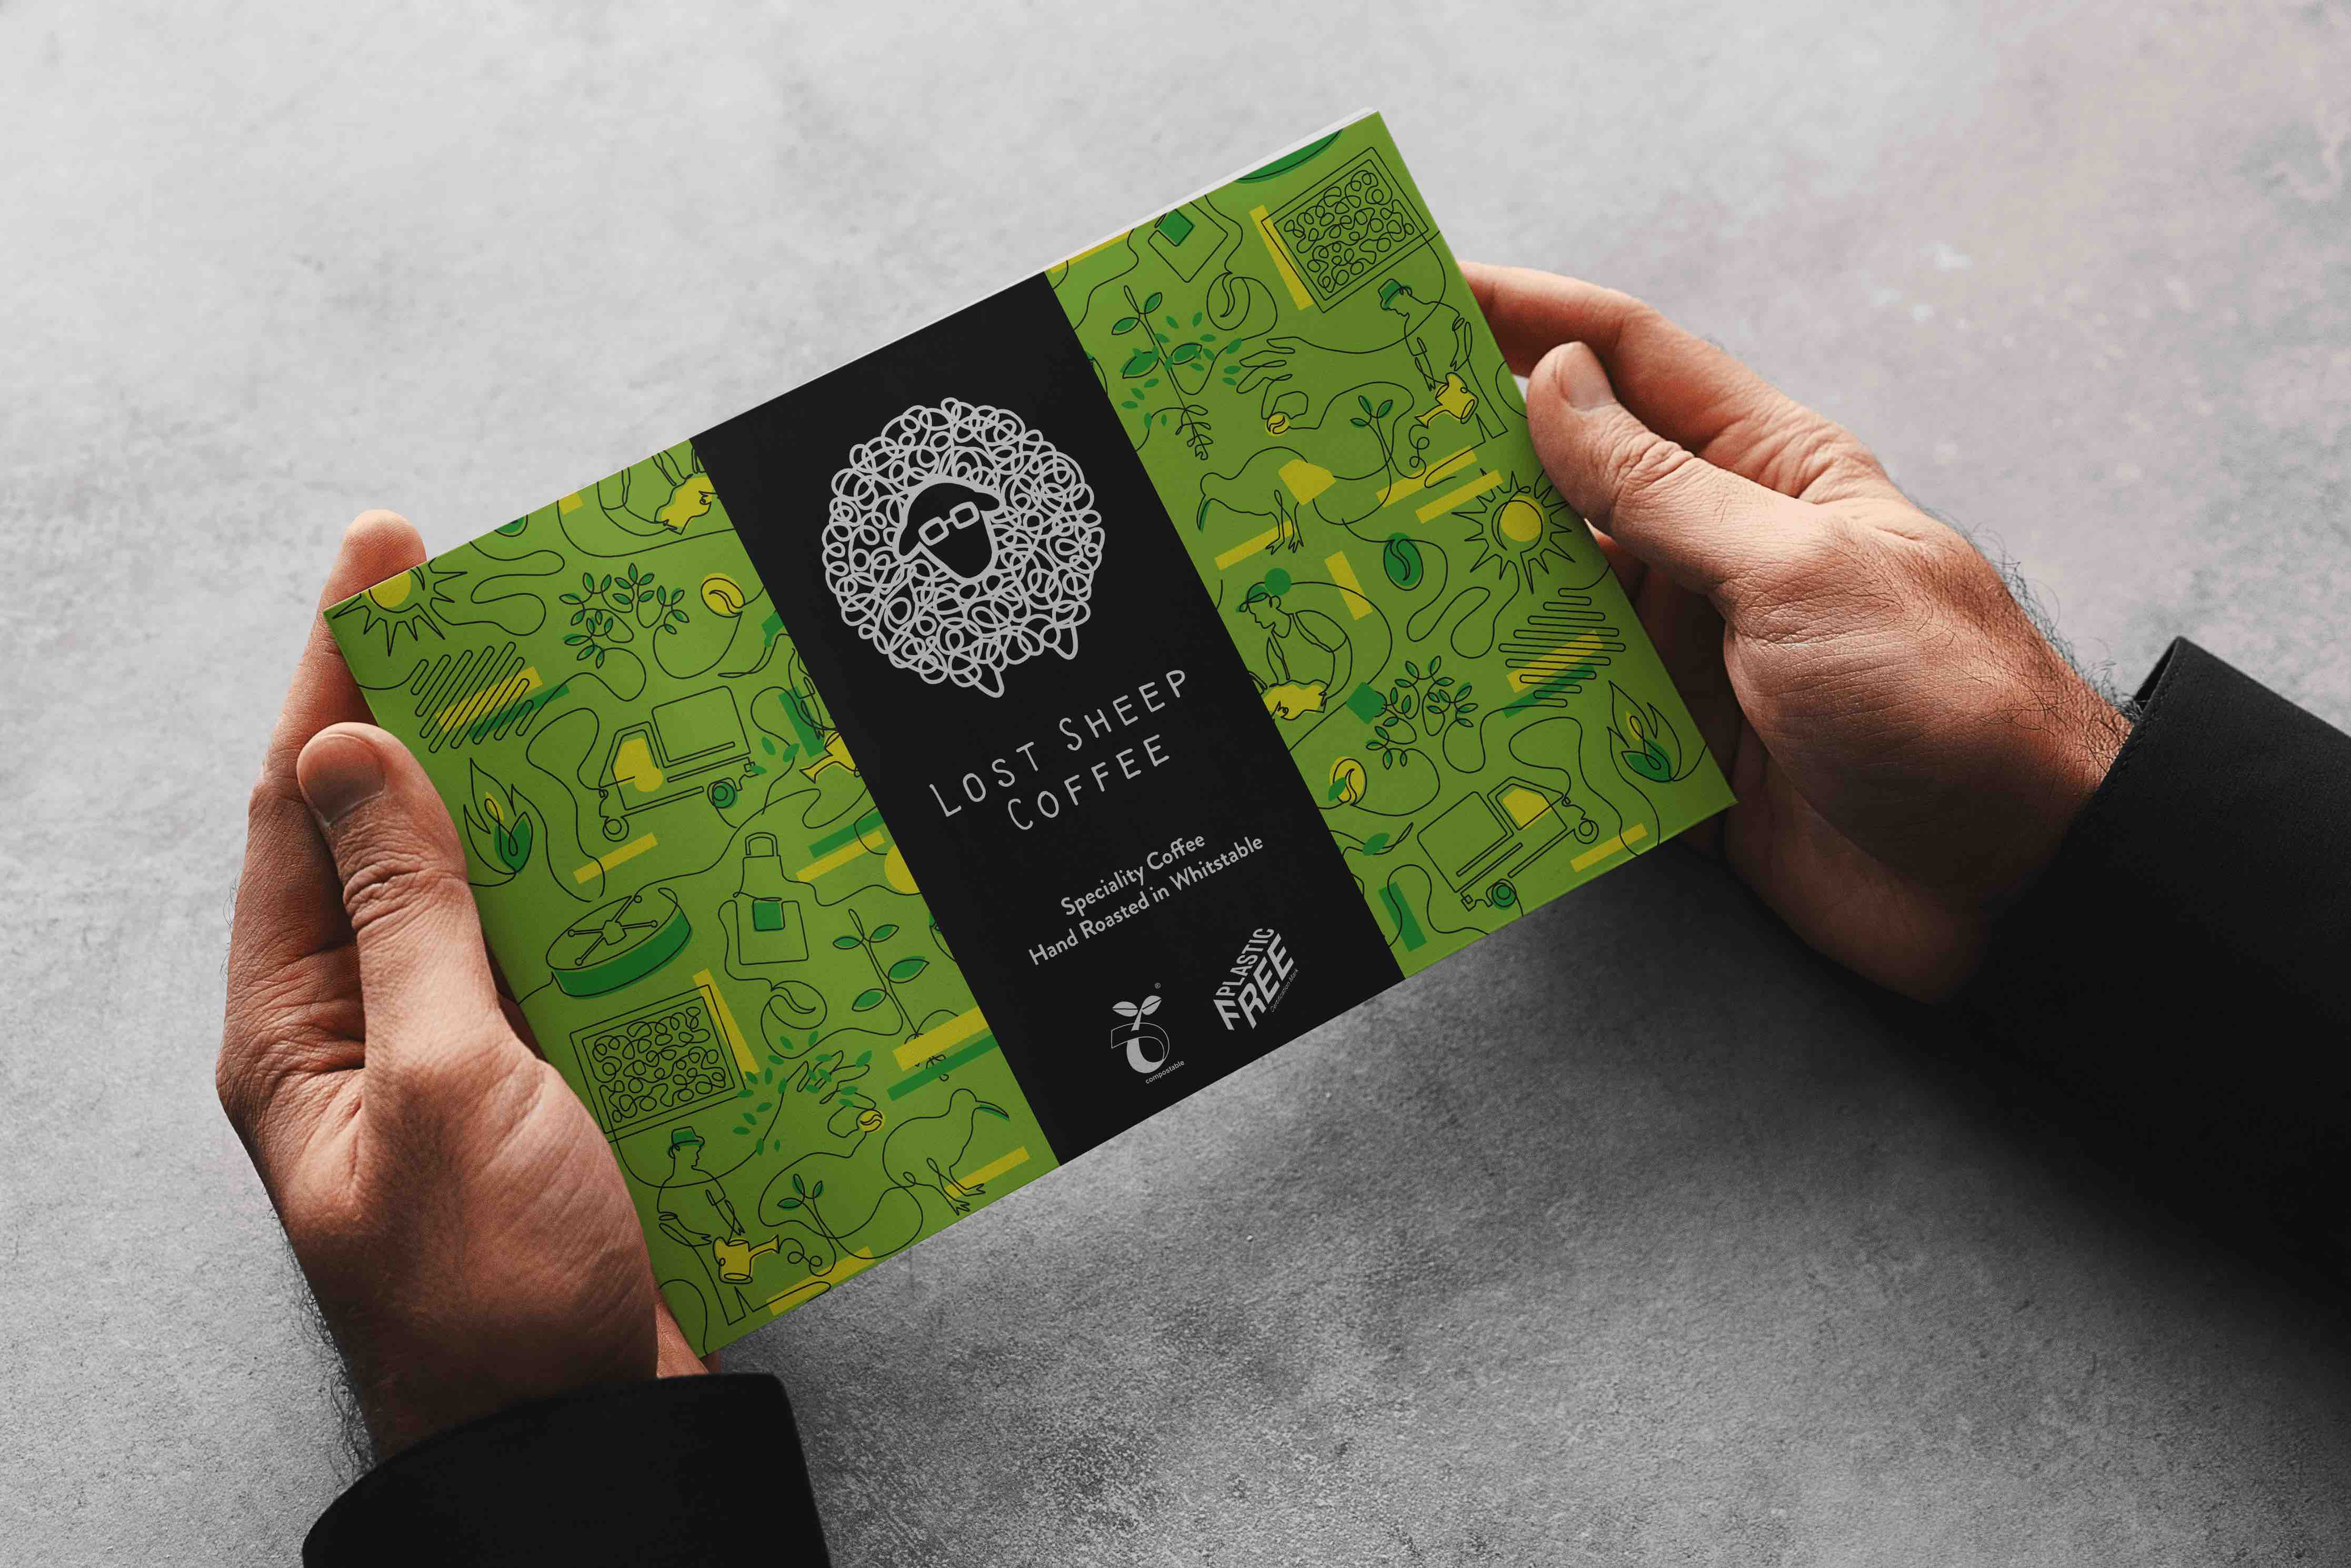 A brochure design with a sheep icon and modern illustrations in the style of lost sheep coffee packaging